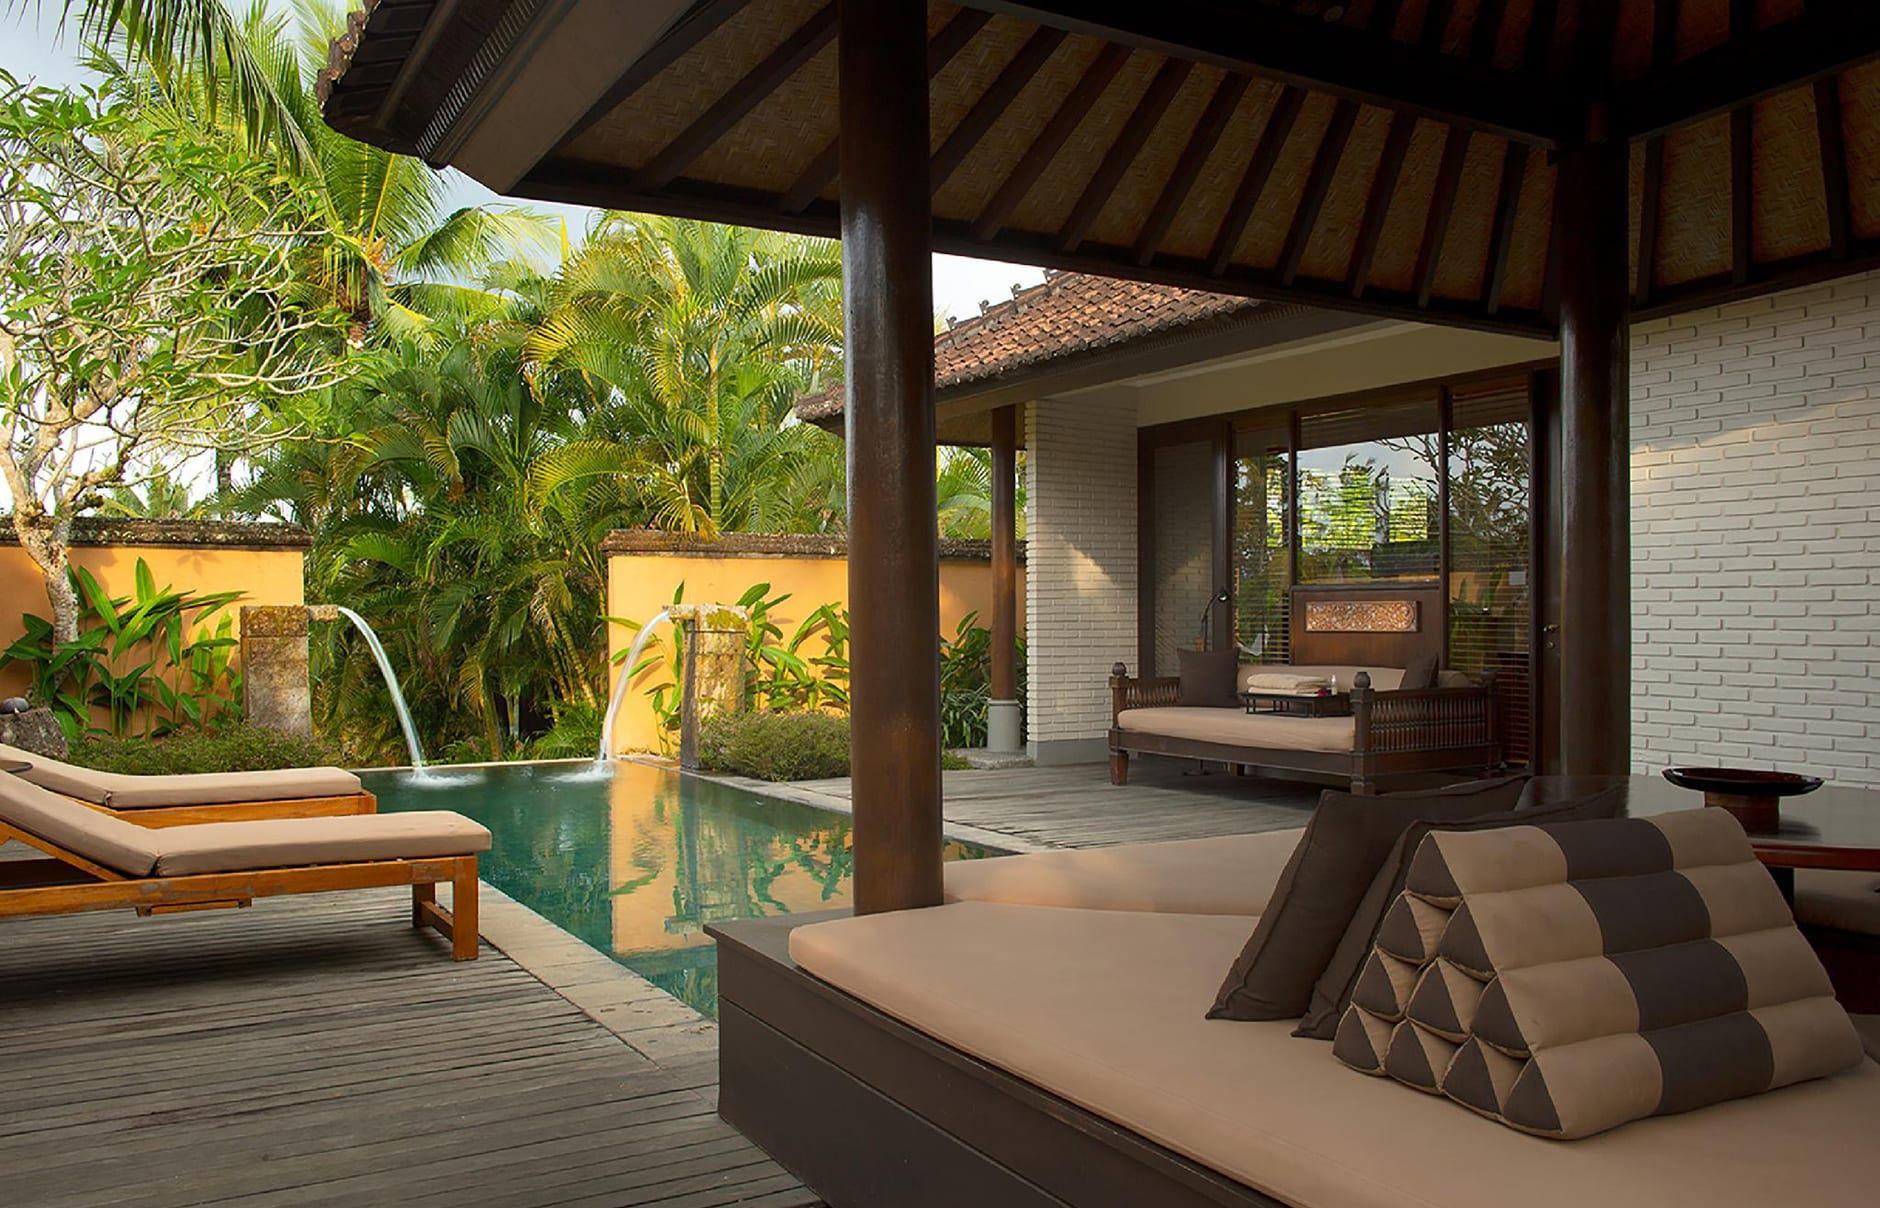 The Chedi Club Tanah Gajah, Ubud, Bali. Hotel Review by TravelPlusStyle. Photo © GHM Hotels